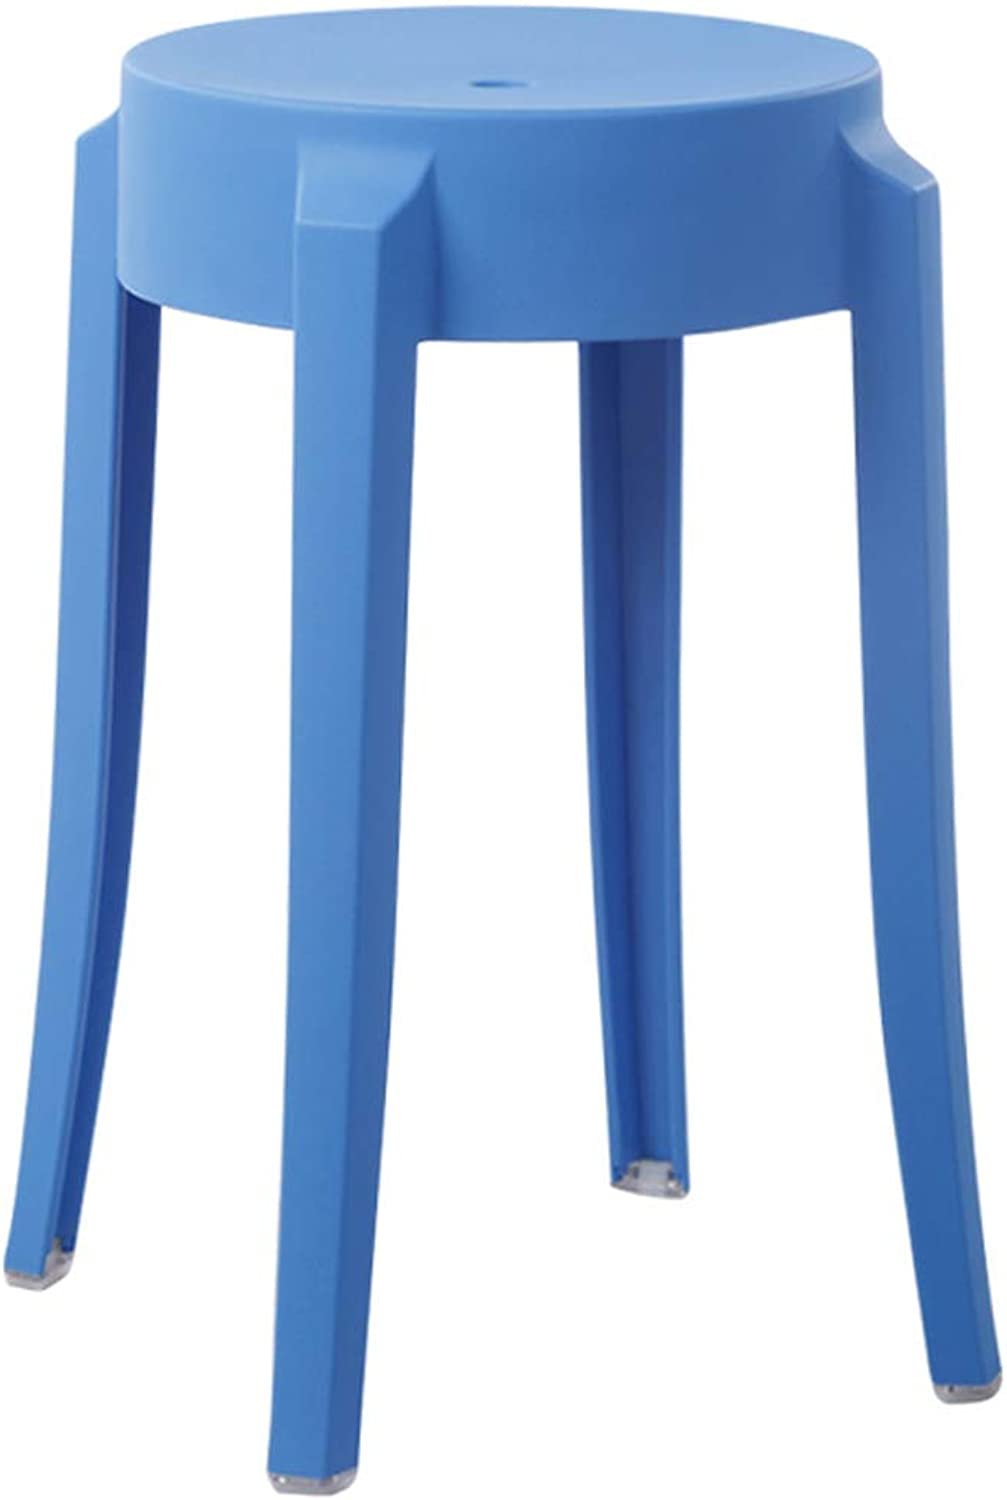 LRW Plastic Stools Thickened Adult Fashionable Small Stools, Modern Household High Stools, European Style Stool Chairs, bluee